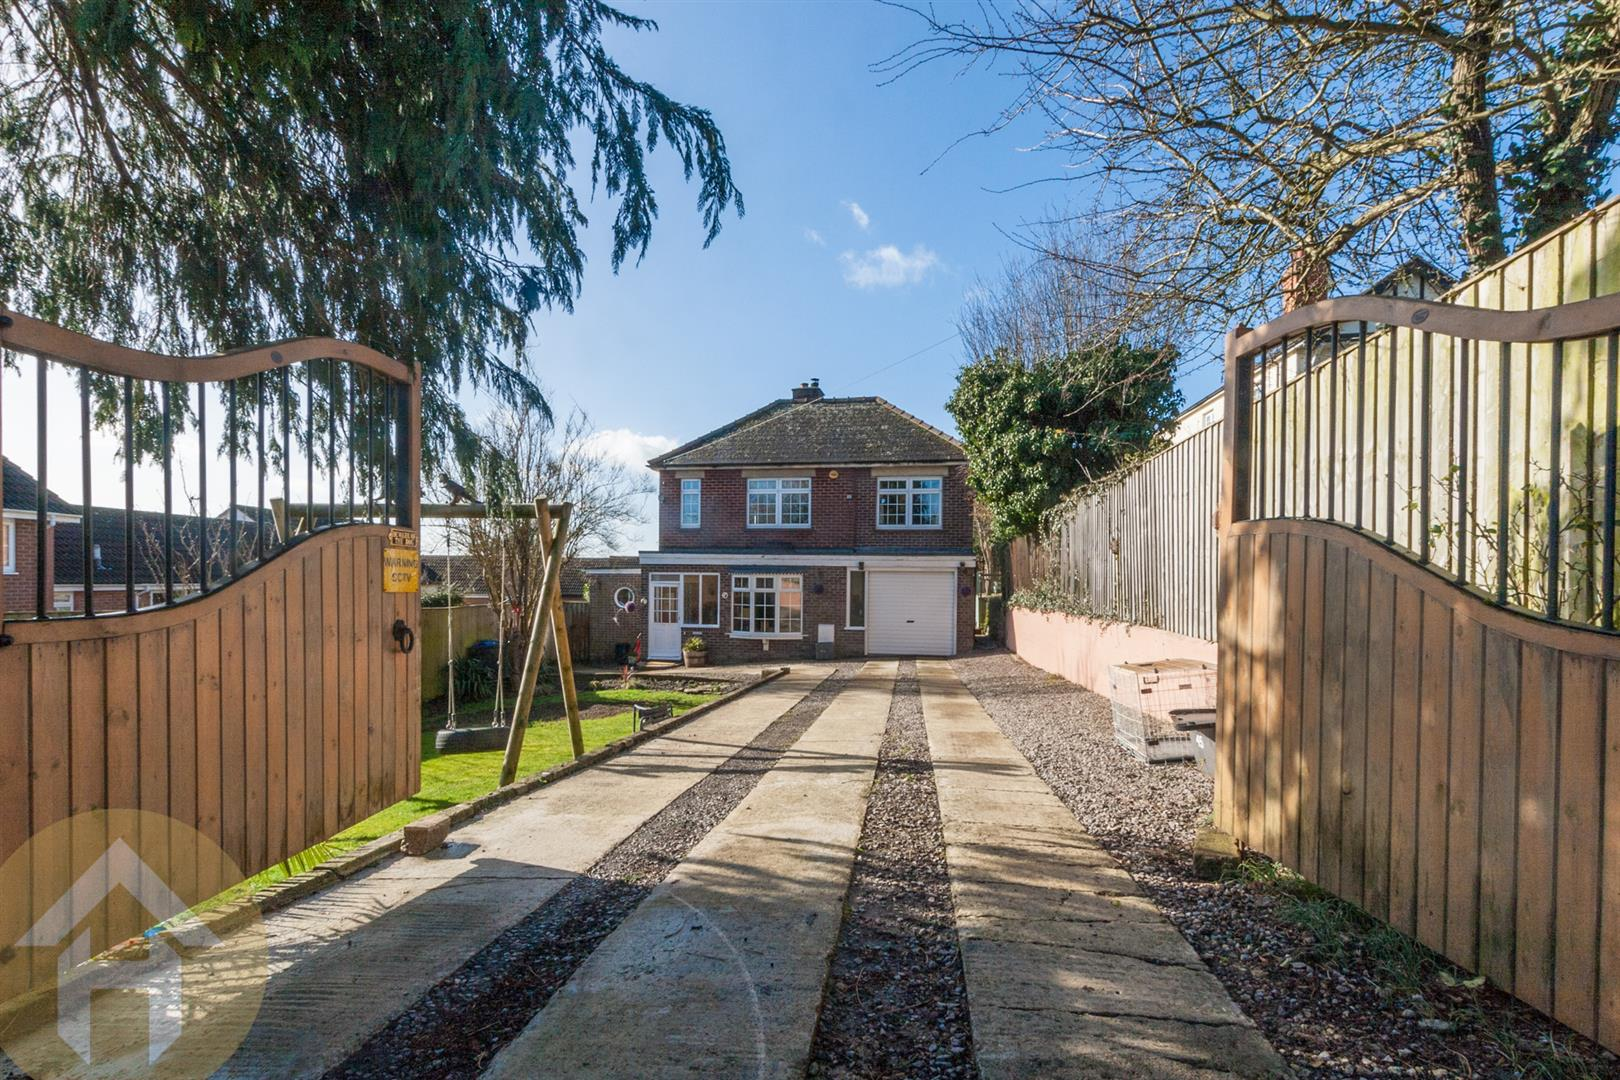 3 Bedrooms Detached House for sale in New Road, Royal Wootton Bassett, SN4